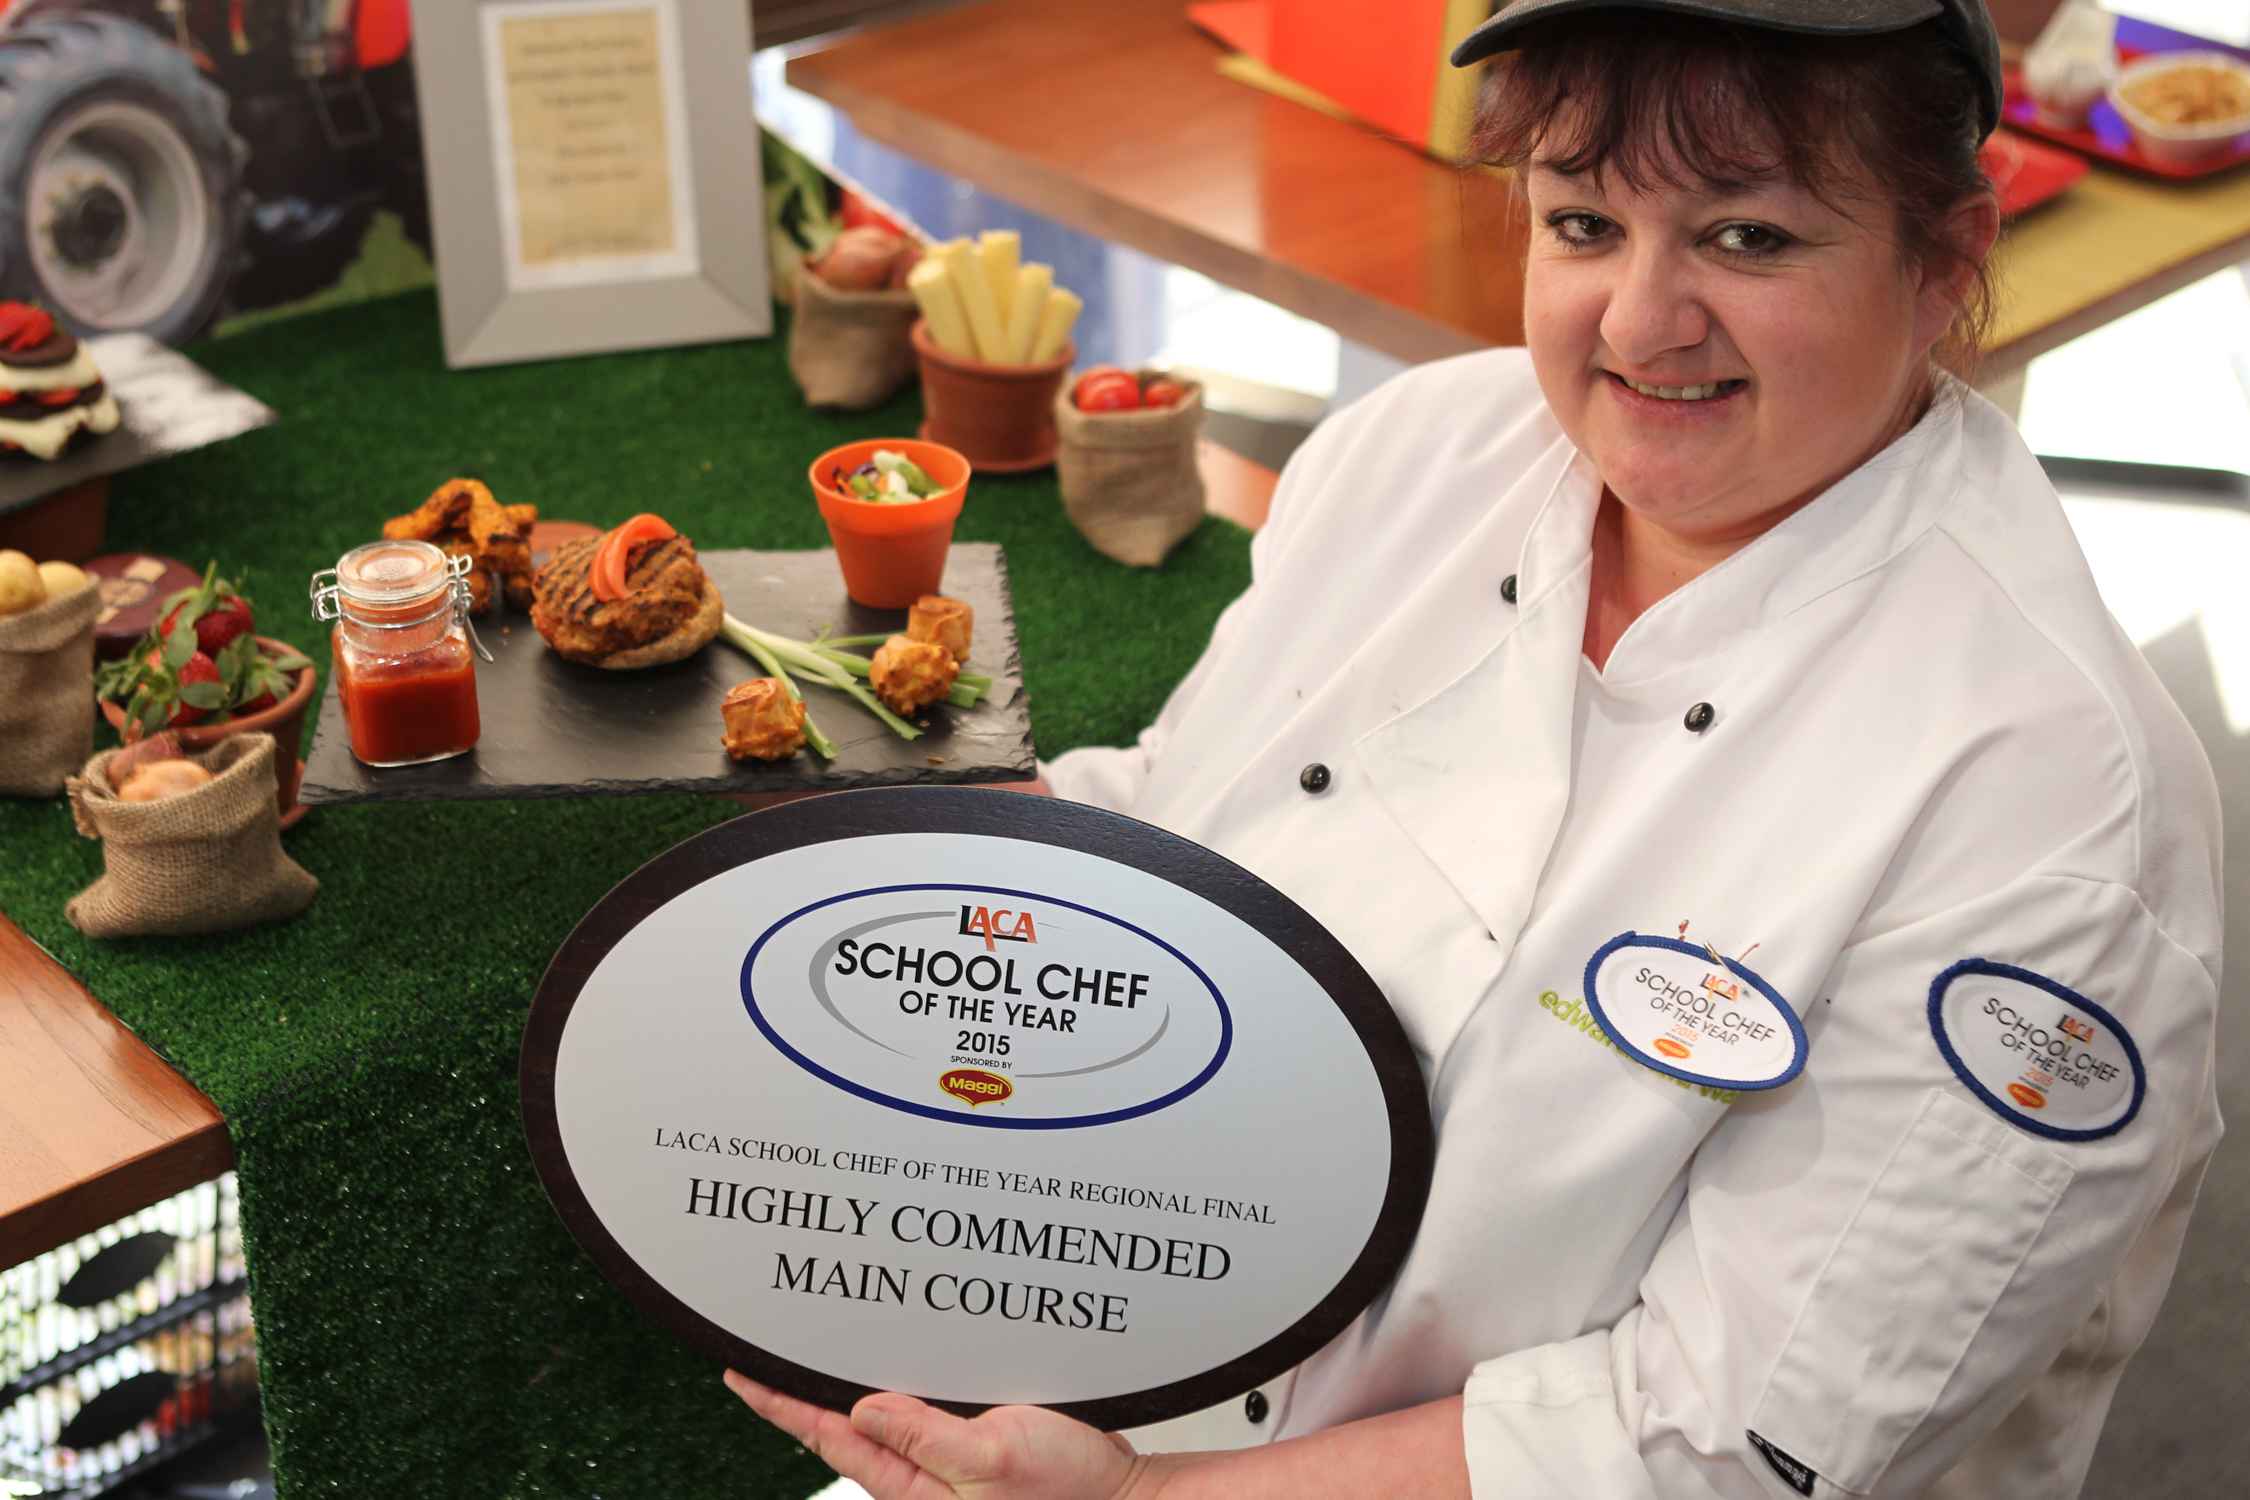 Cake Decorating Course Weston Super Mare : SCOTY 2015: South West regional final winner announced ...